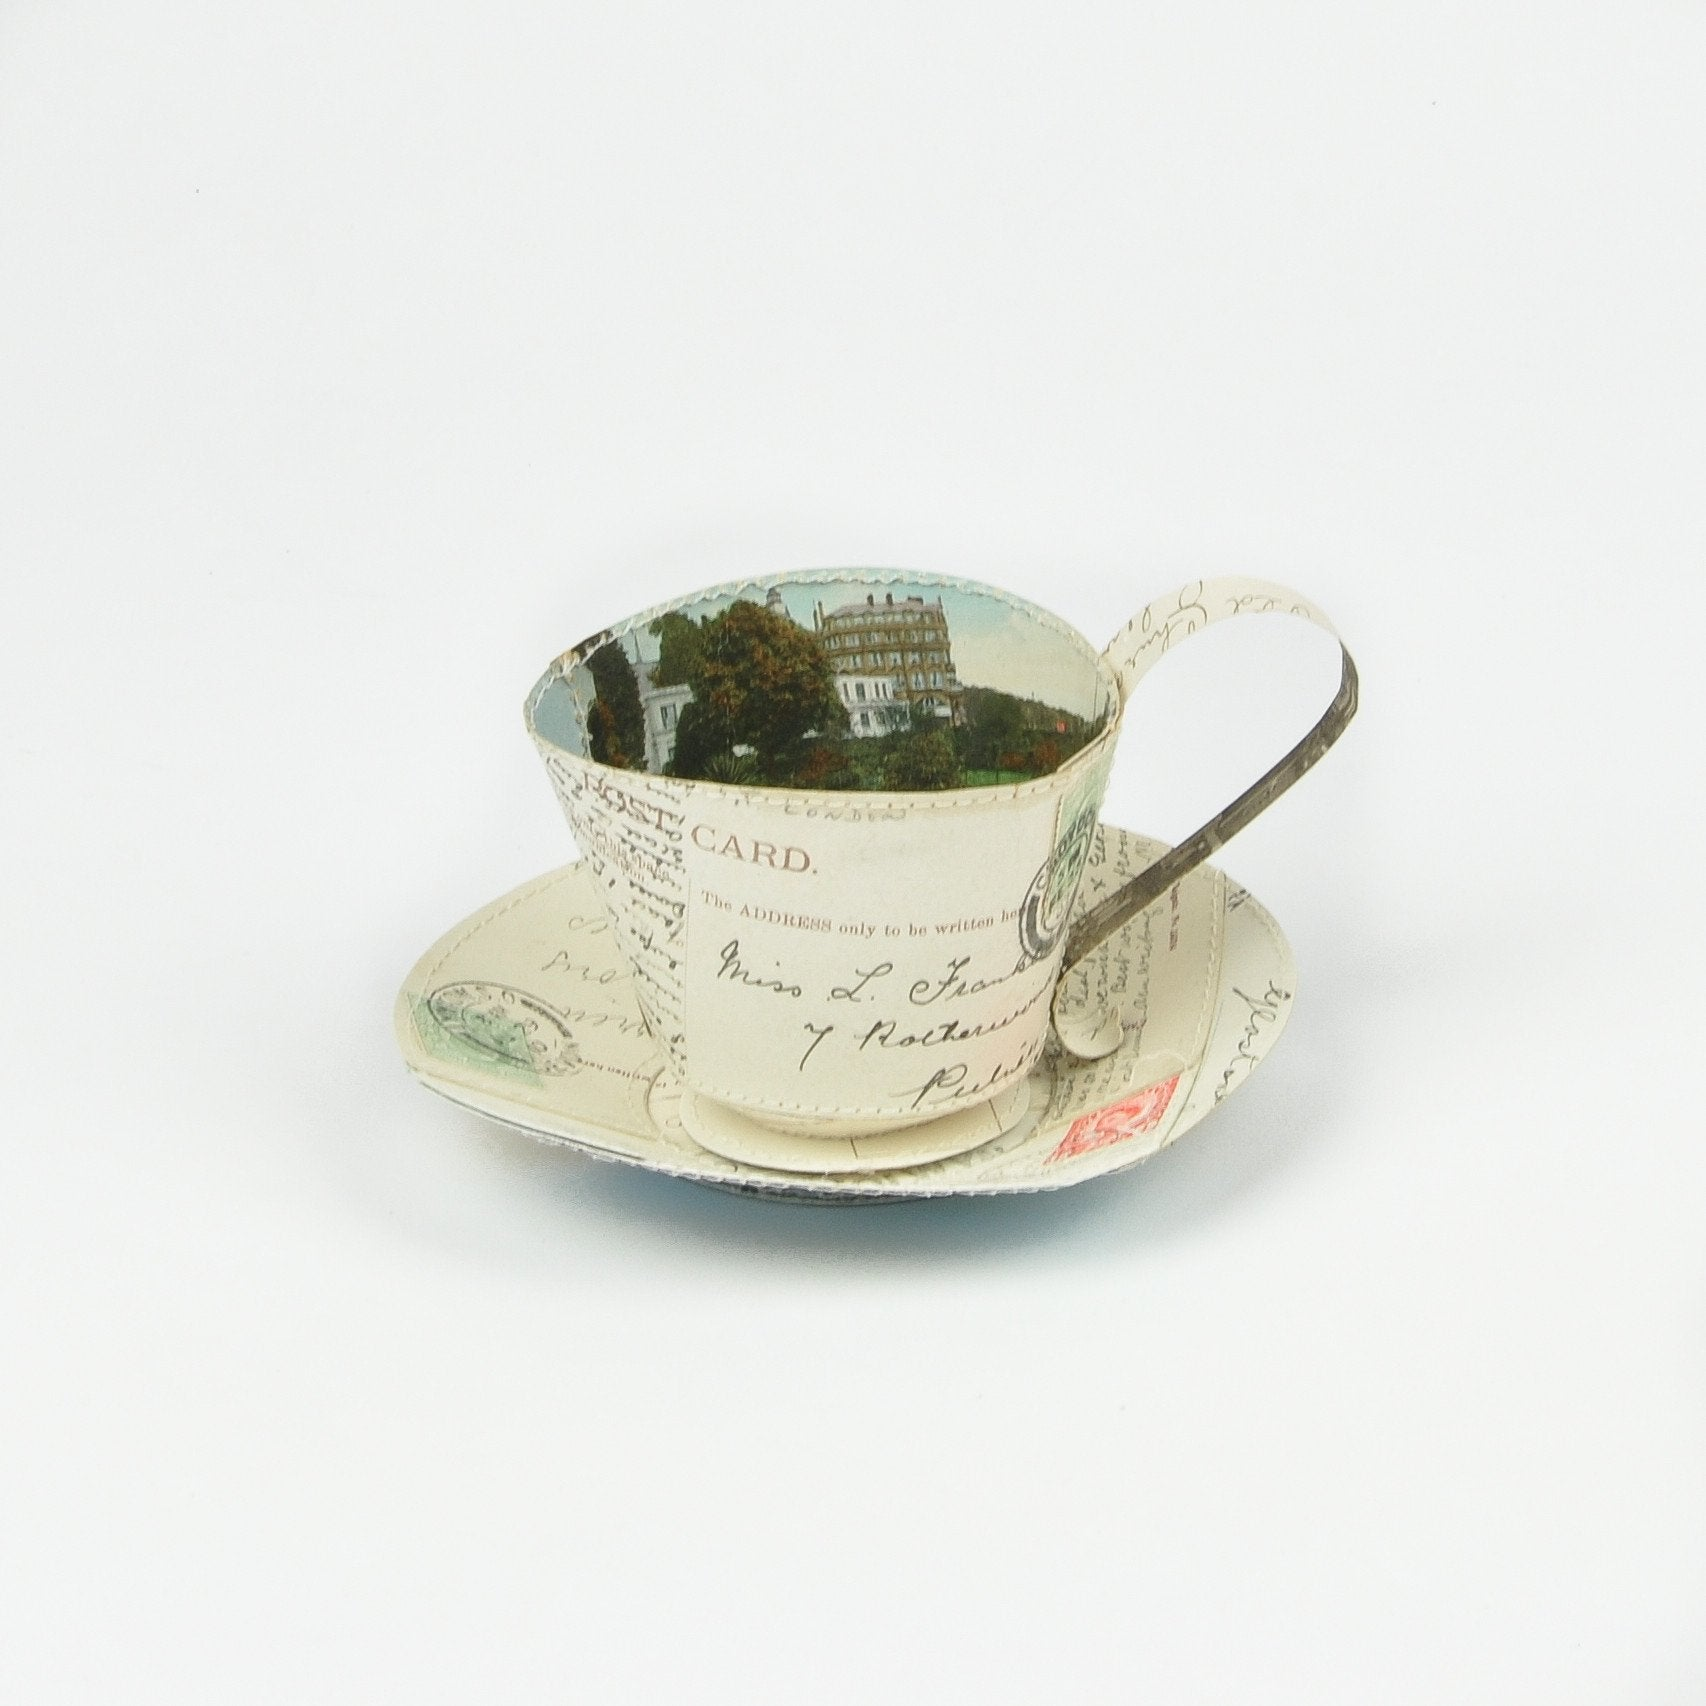 Jennifer Collier Paper Tea Cup and Saucer